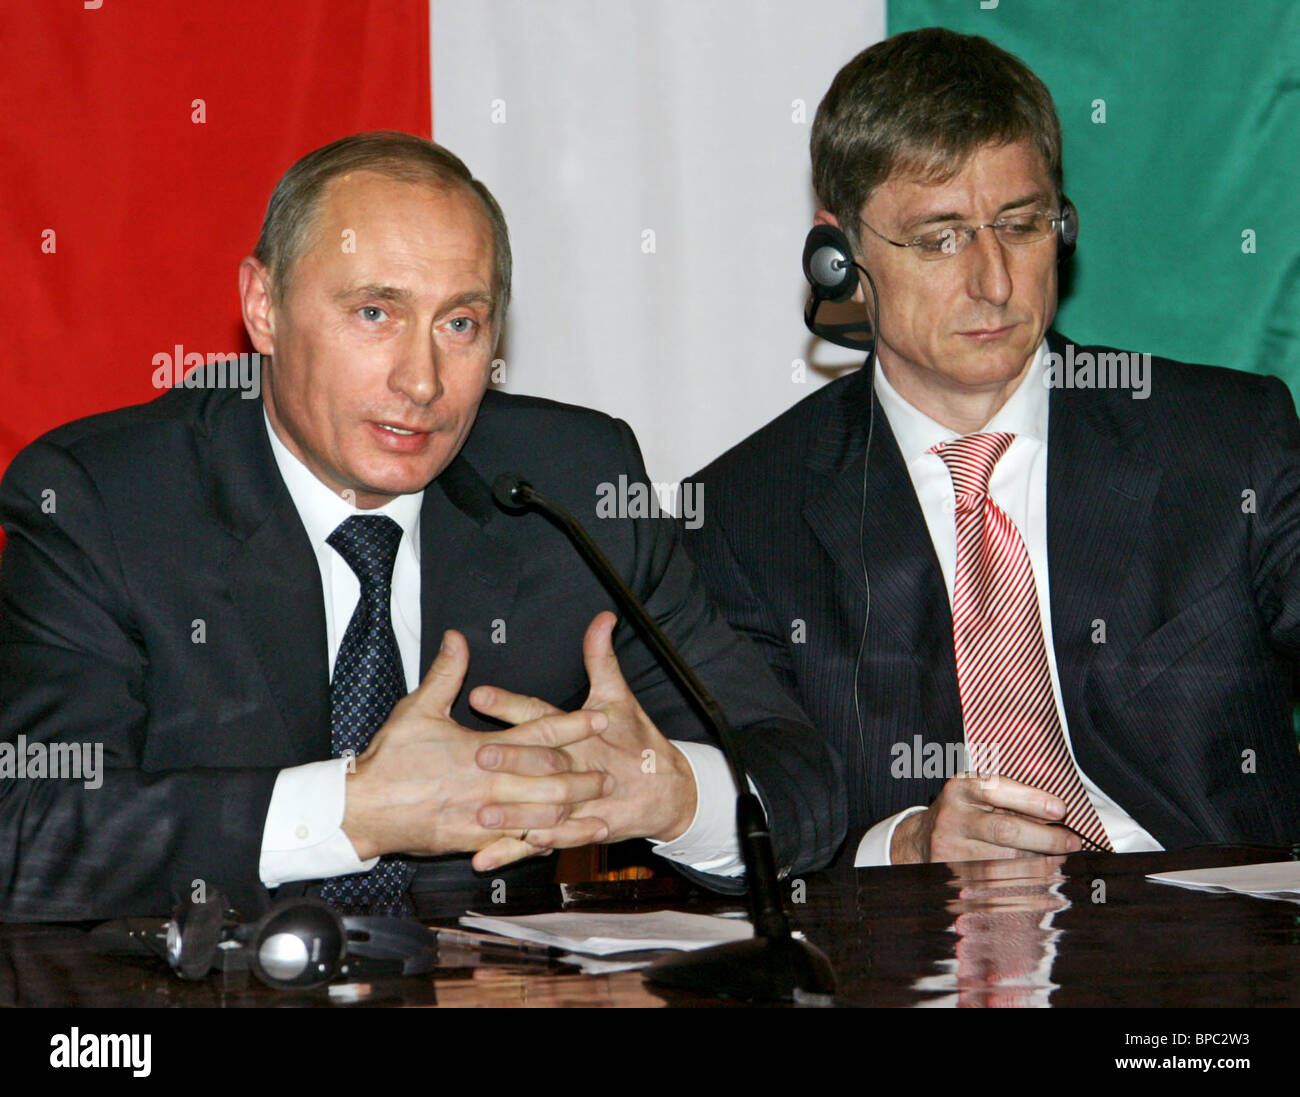 Russian President Vladimir Putin on official visit to Hungary - Stock Image